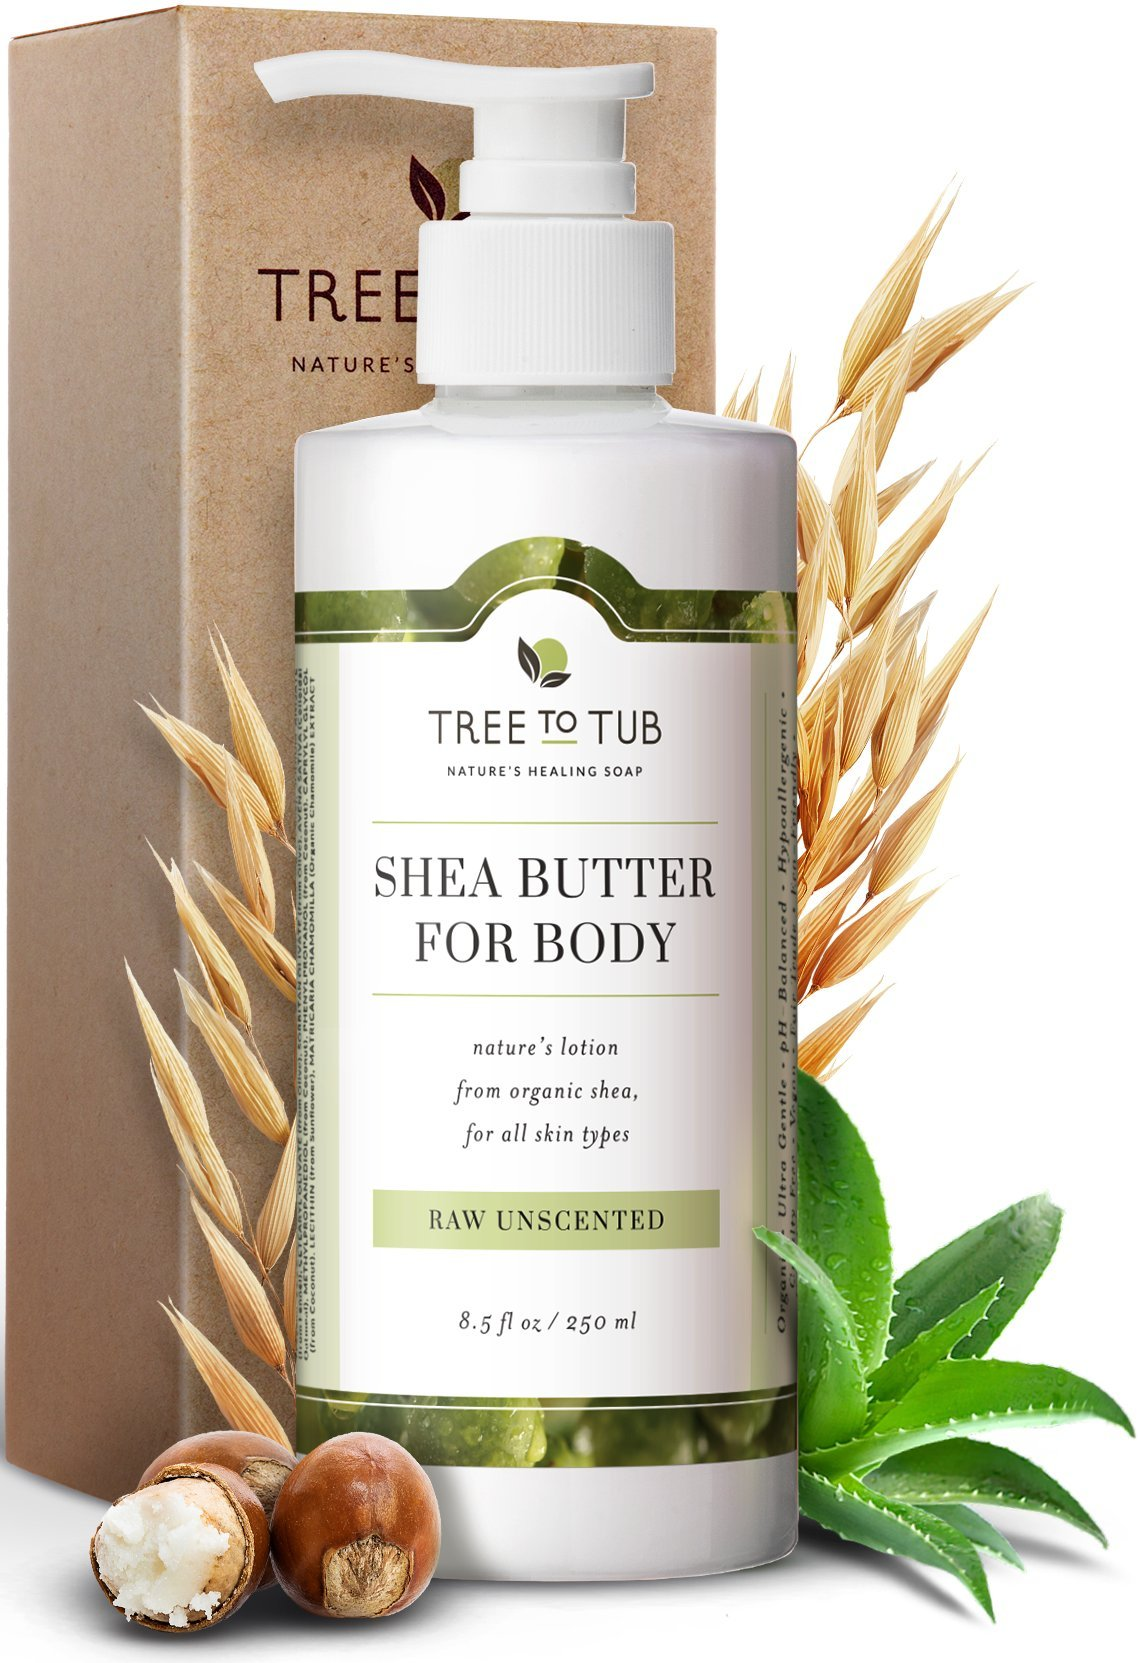 Real, Sensitive Skin and Eczema Lotion by Tree To Tub - pH 5.5 Balanced, Fragrance Free Lotion for Men and Women. Eczema, Psoriasis Treatment with Organic Shea Butter, Cocoa Butter, Aloe Vera 8.5 oz by Tree to Tub